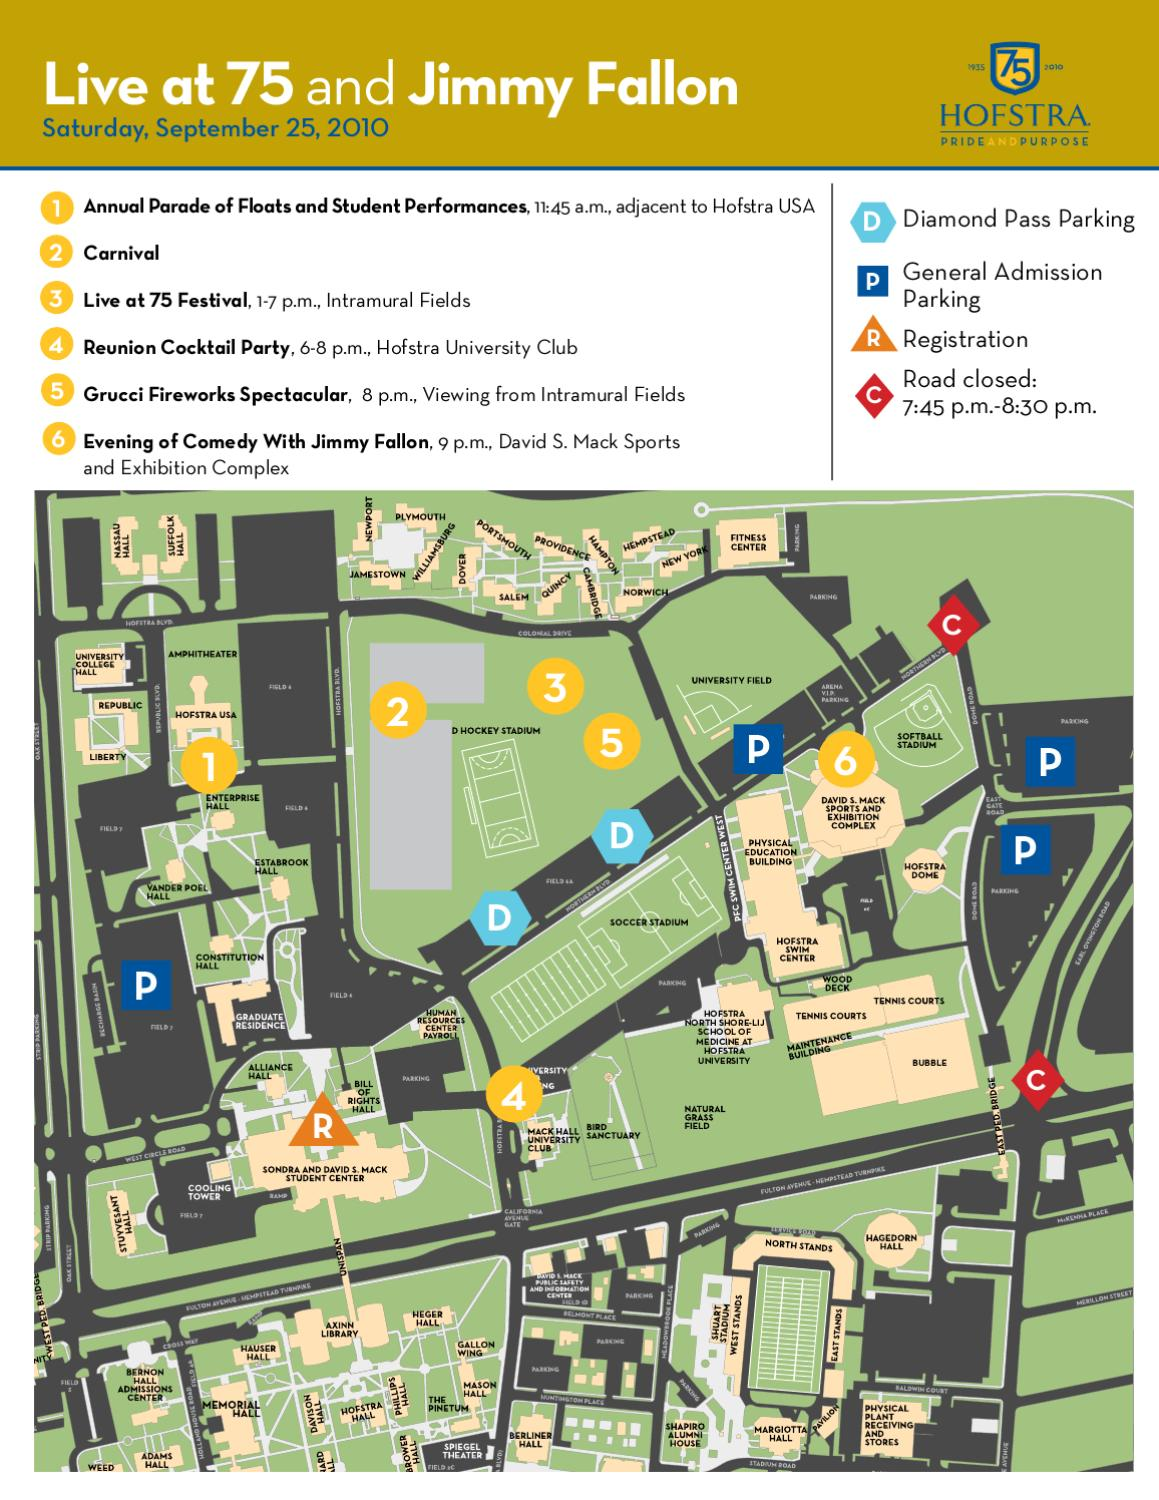 Live At 75 Event Map By Hofstra University Issuu